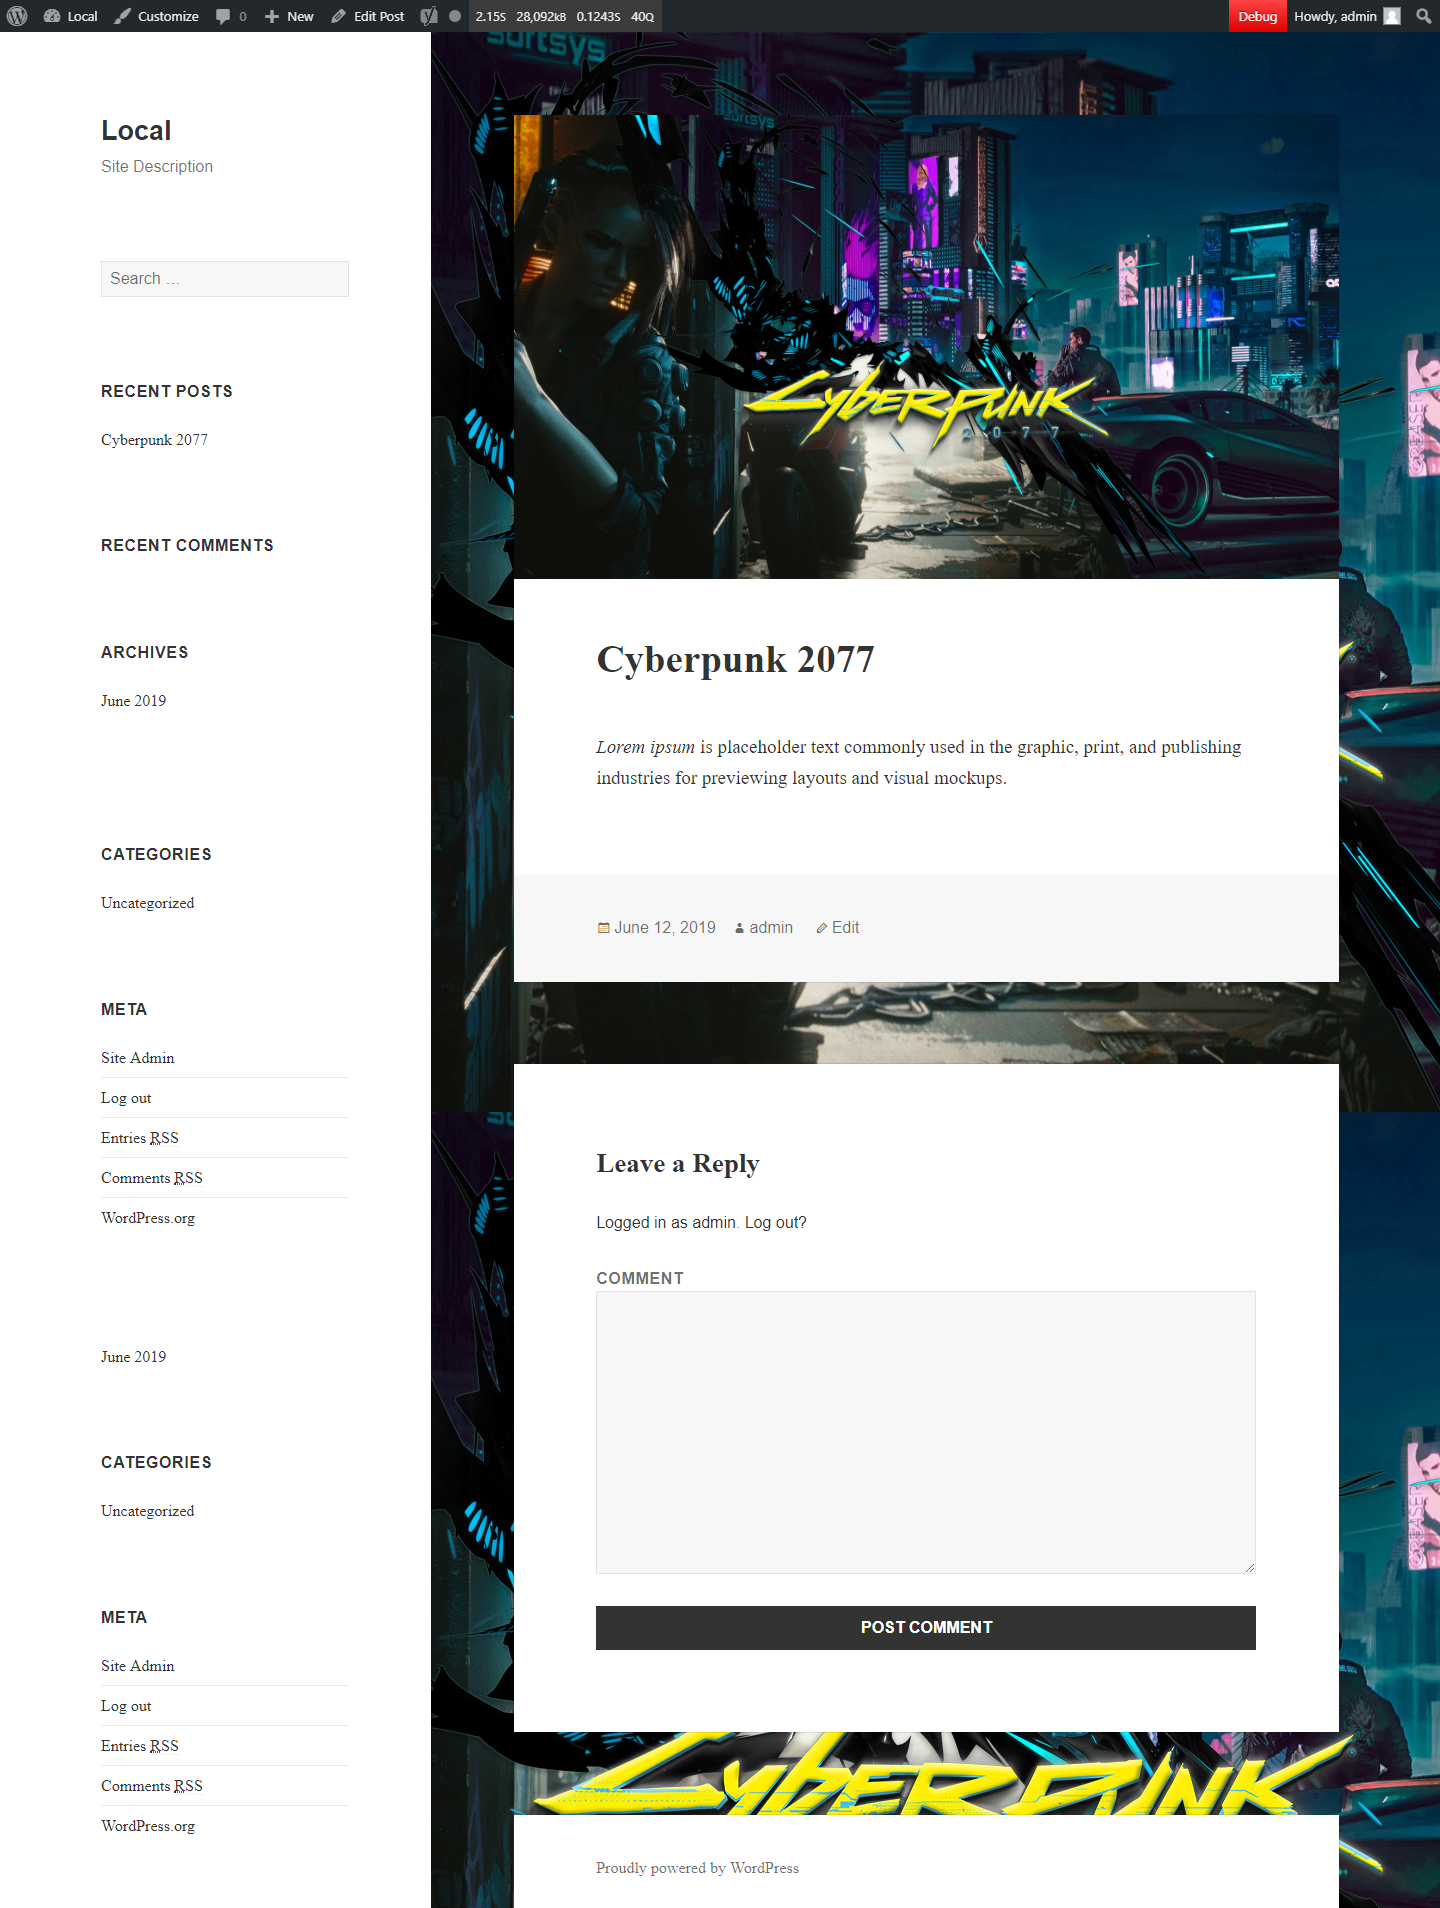 Featured Background Image preview in post